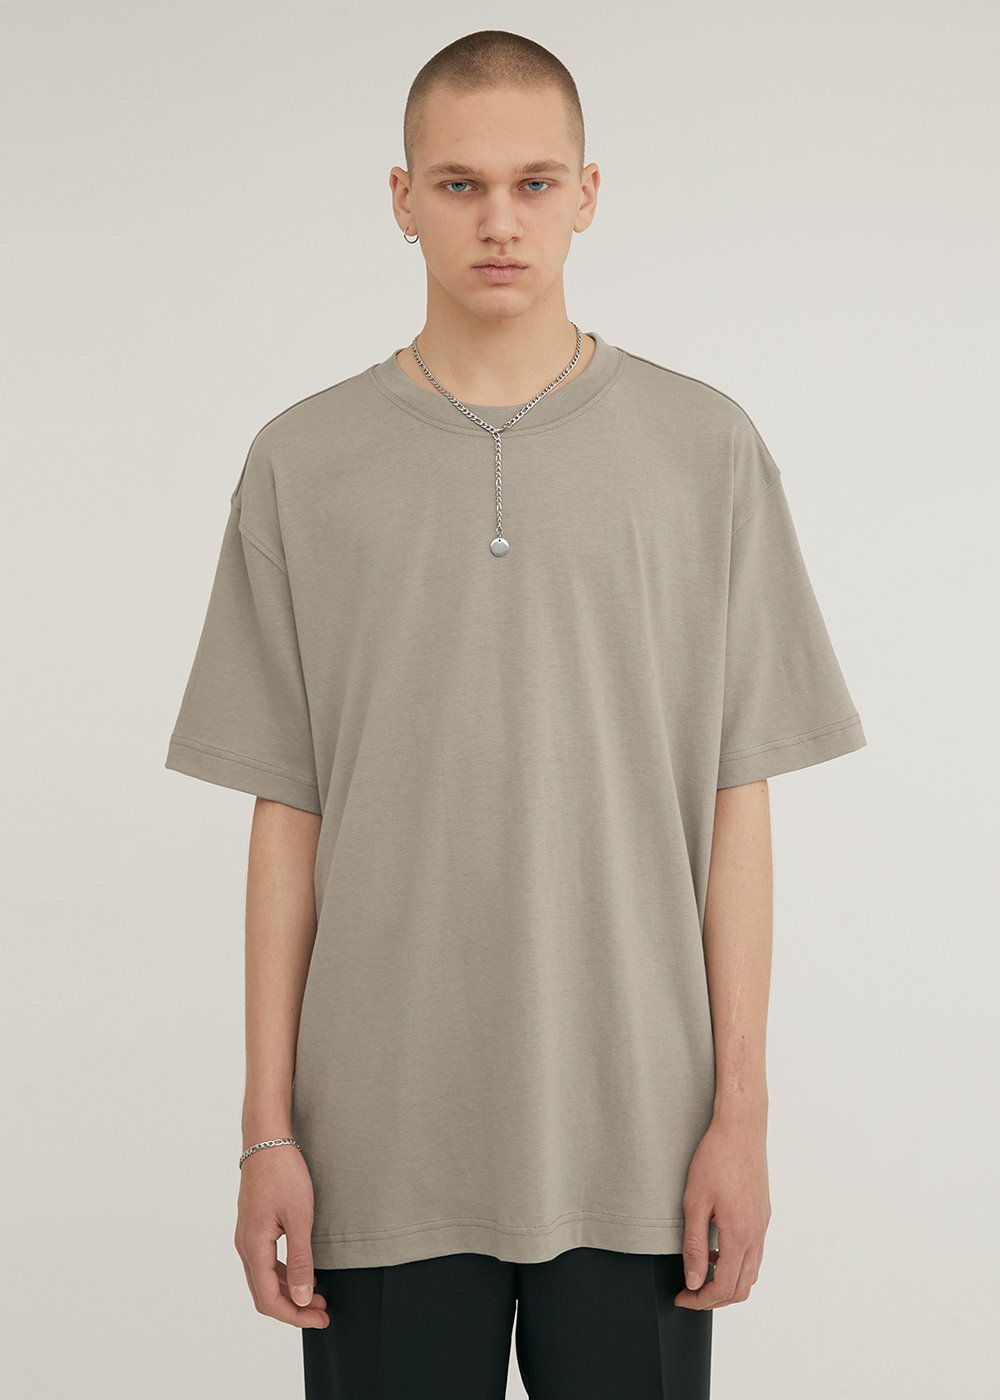 HALF SLEEVE CREW NECK T-SHIRT KHAKI